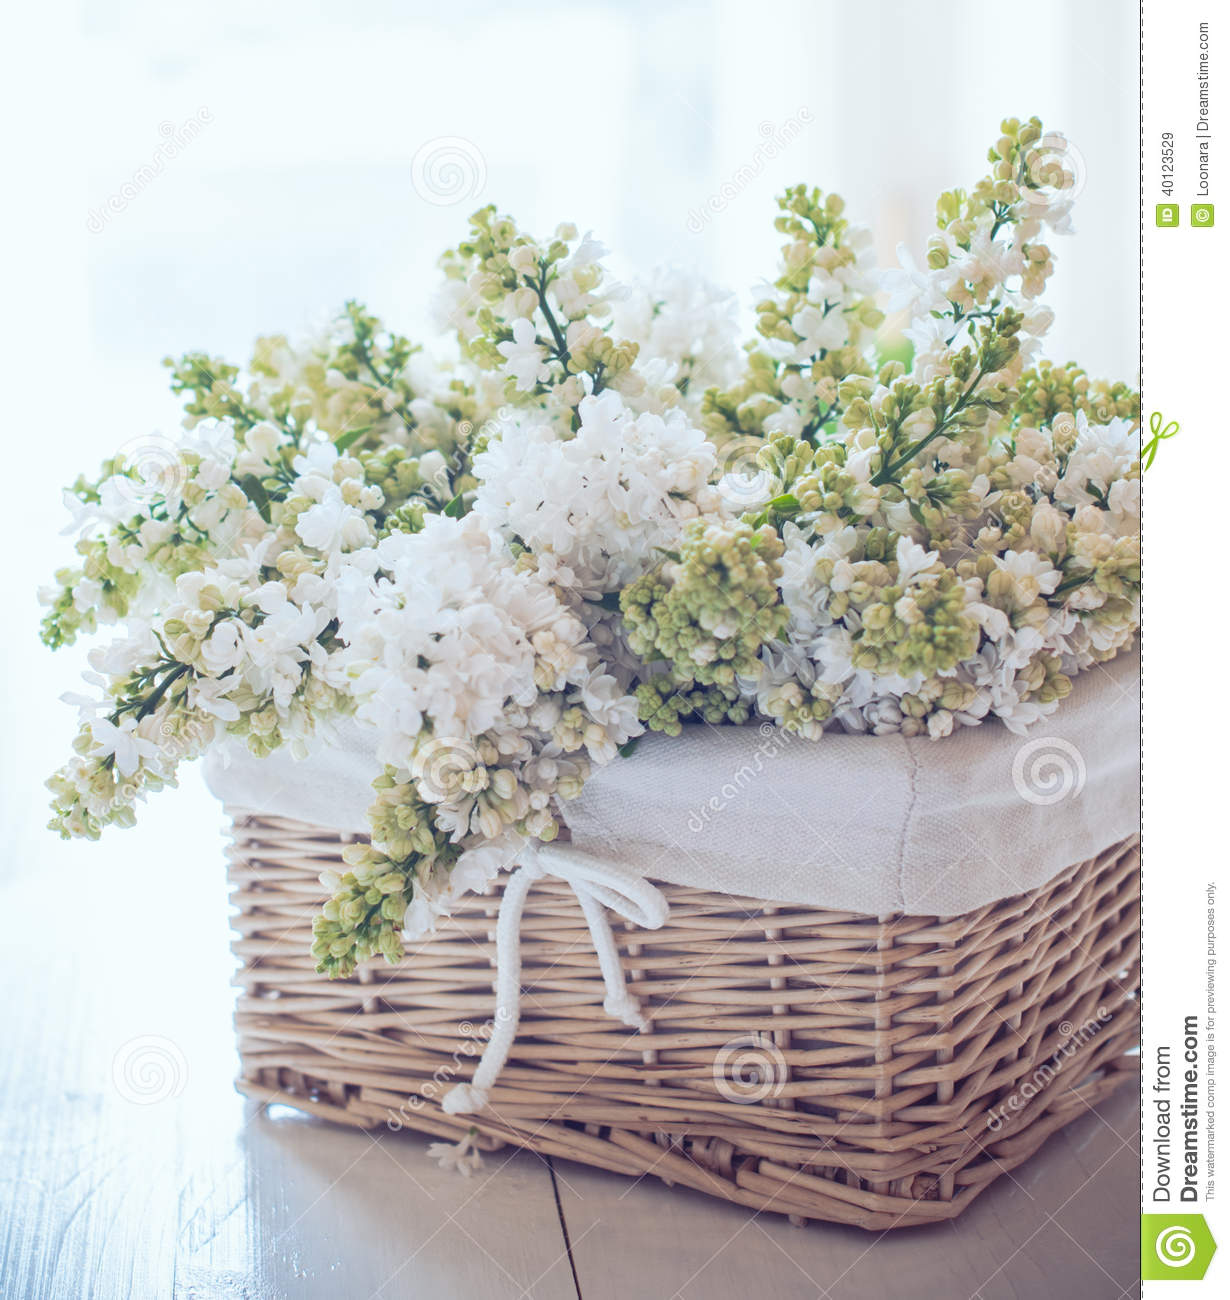 White Lilac Flowers In A Wicker Basket Stock Photo - Image: 40123529